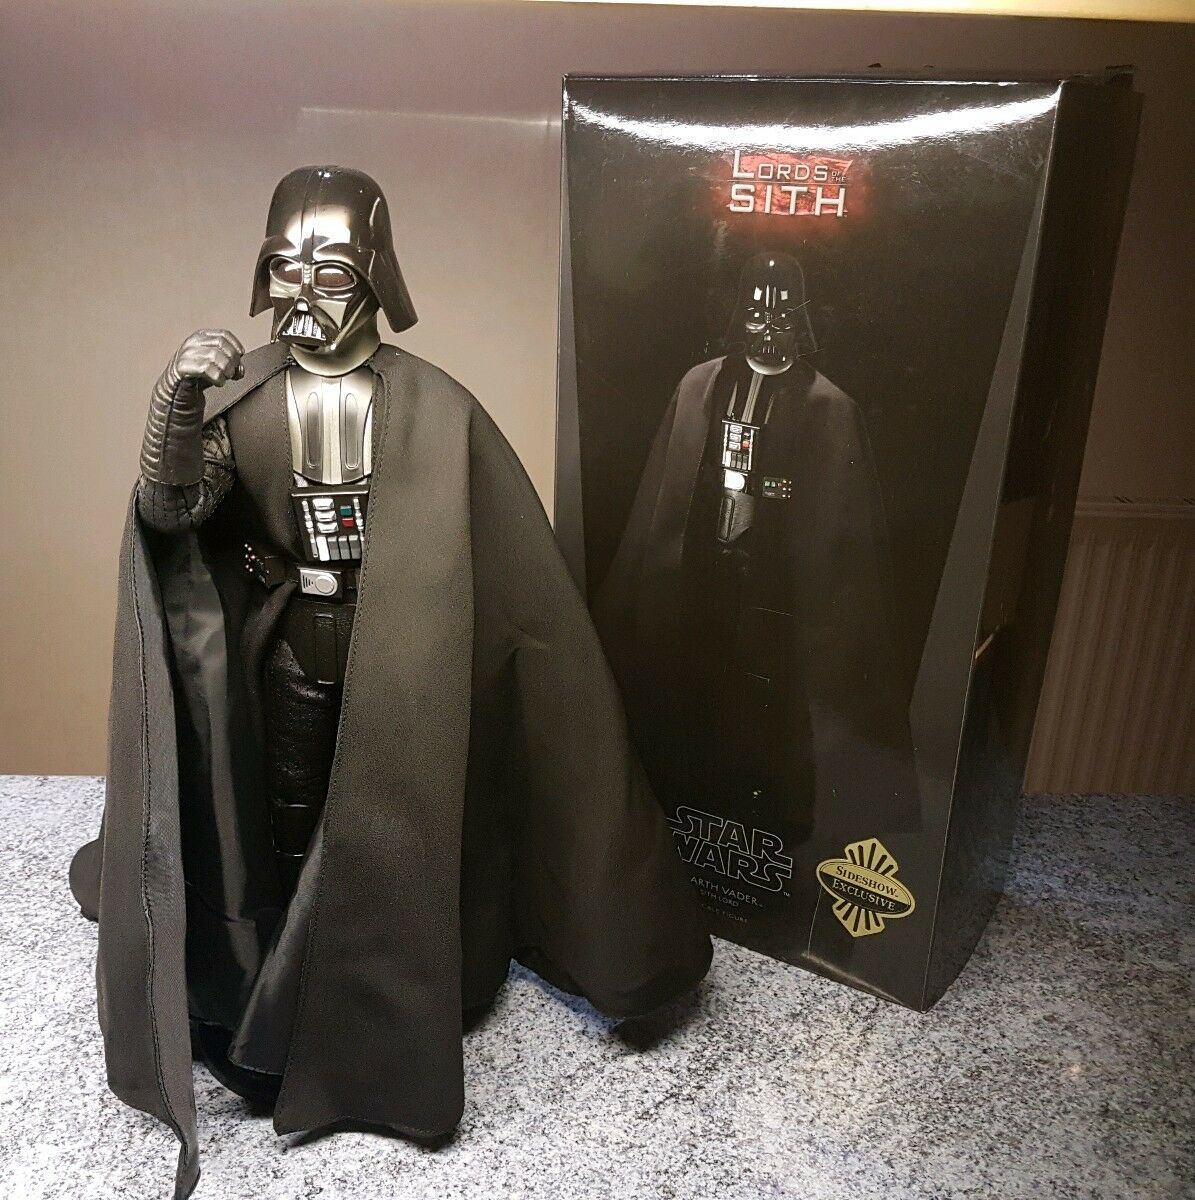 Star Wars Darth Vader Lords of the Sith 1 6 scale 12  figure SIDESHOW EXCLUSIVE